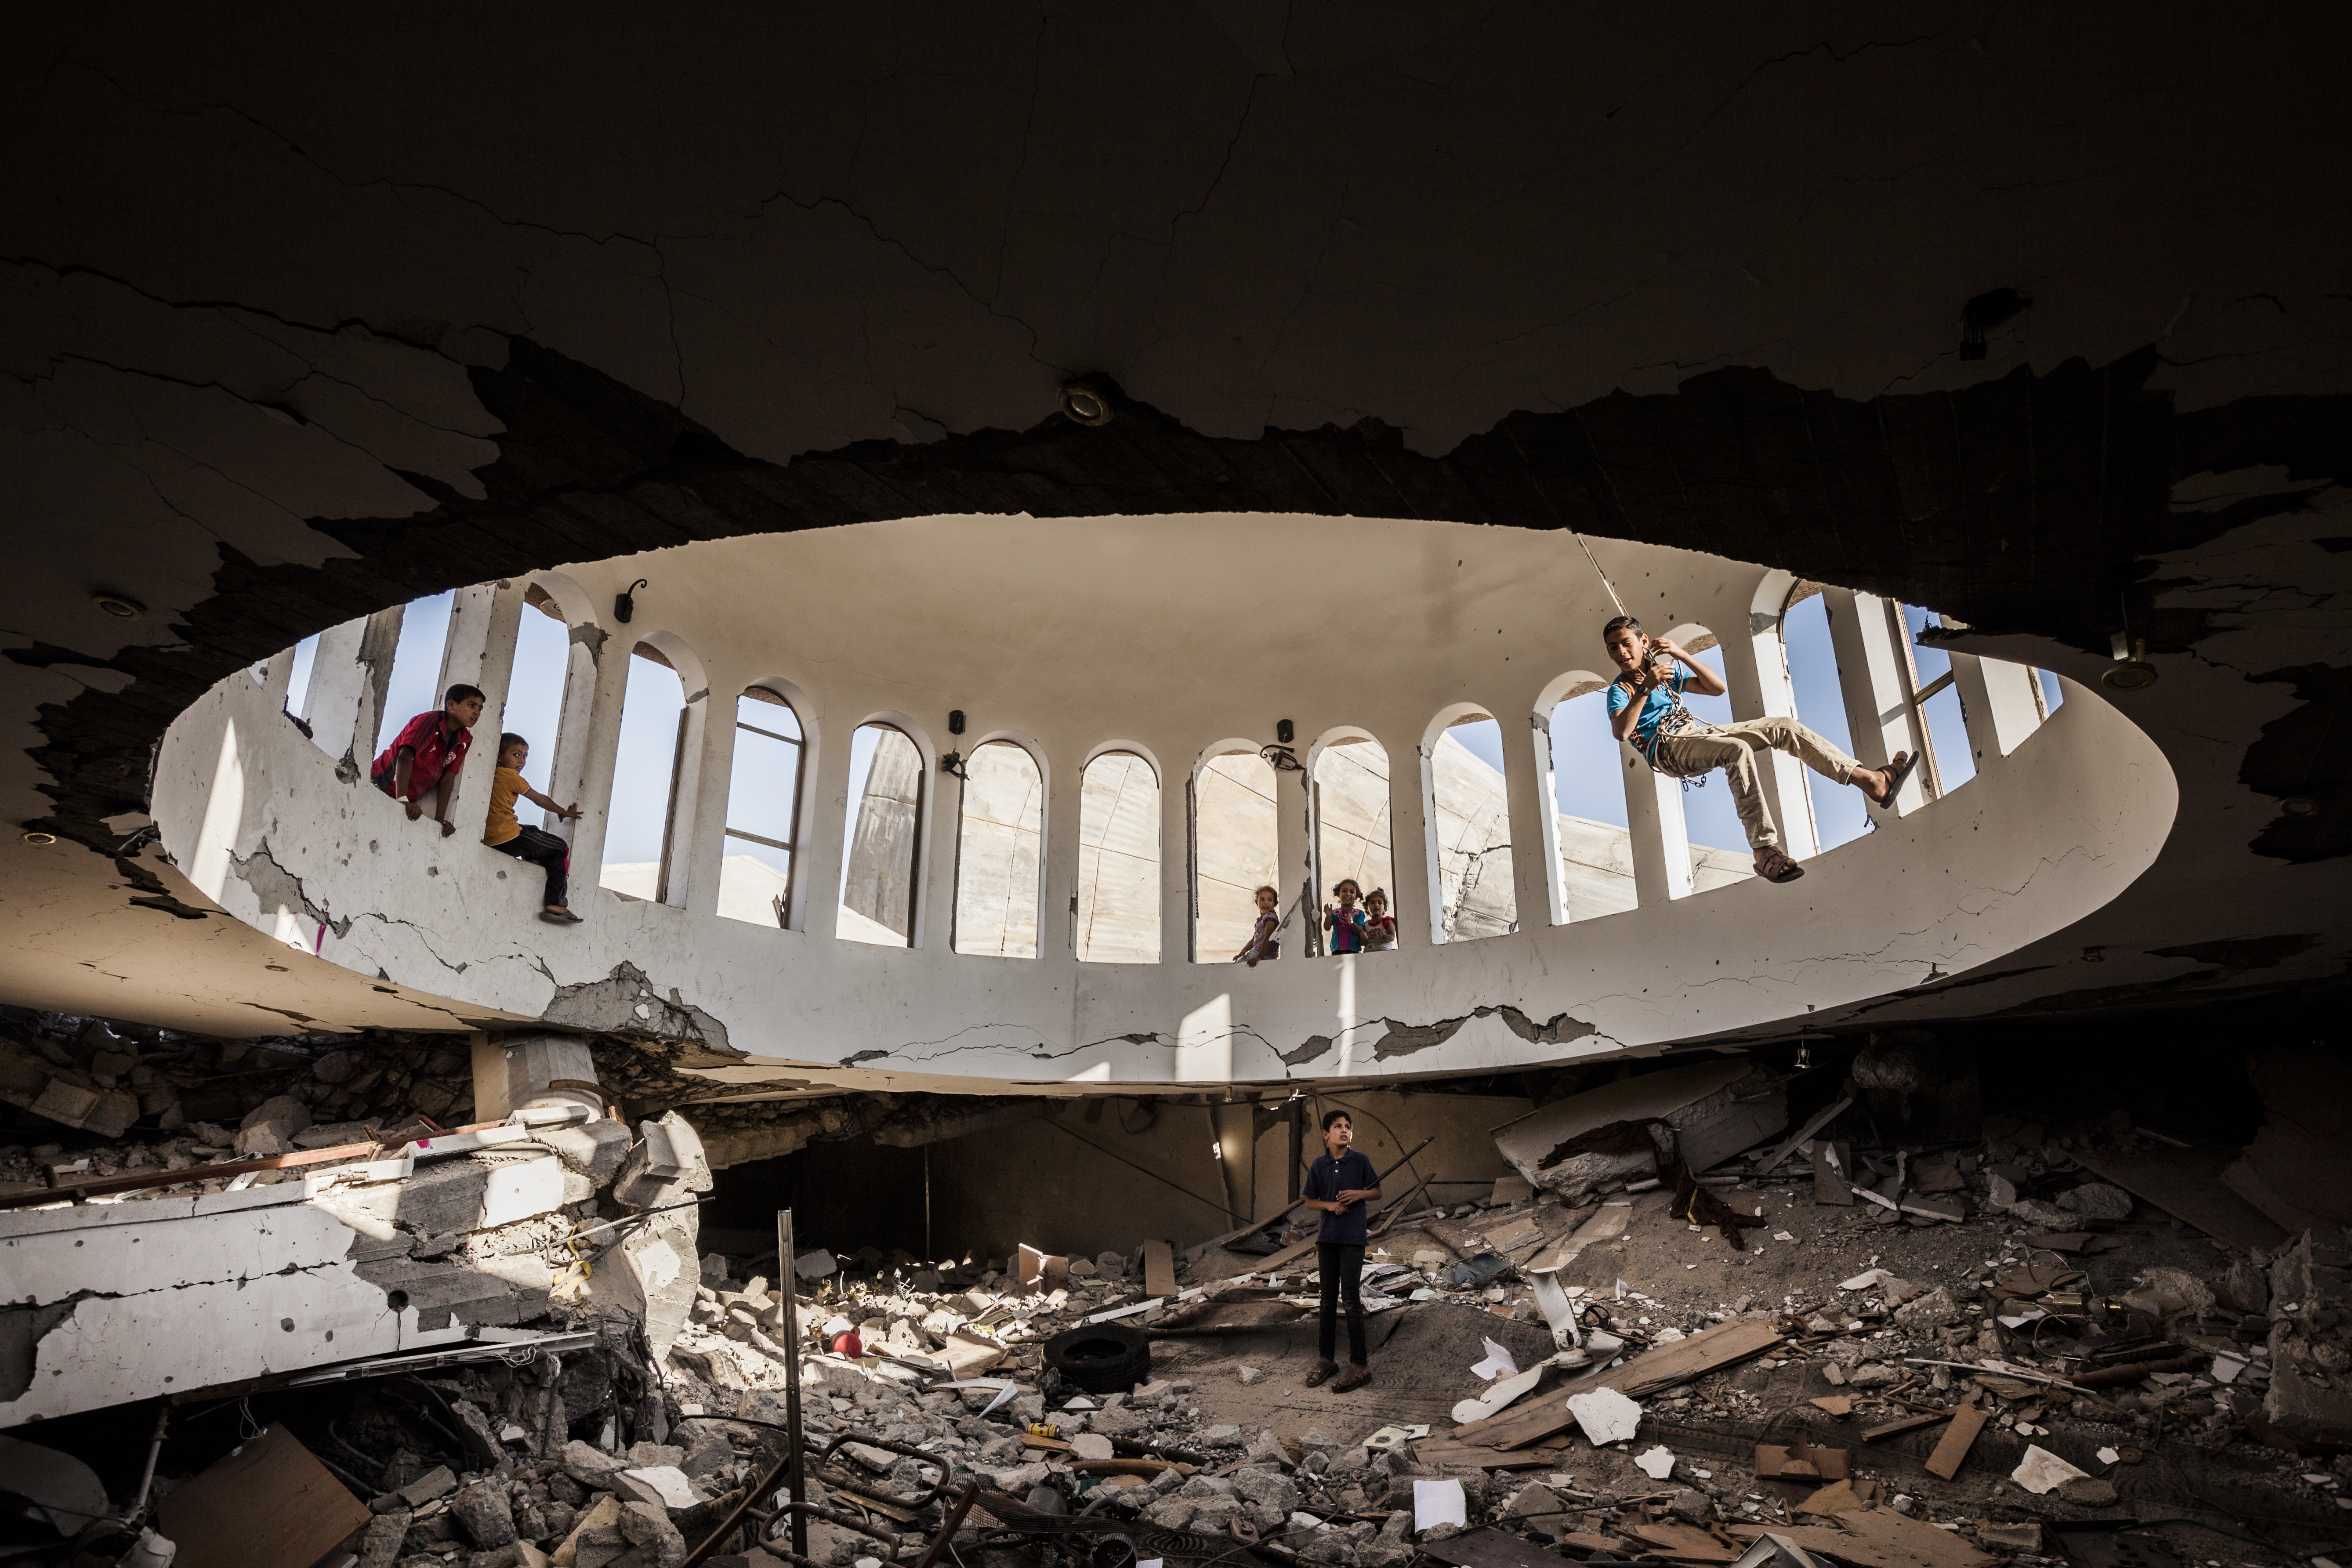 Destroyed mosques in Gaza after the last war against israel : Children play under the dome of the destroyed dome of the Ebad El Rahman mosque in Khuzaa in the south of Gaza.